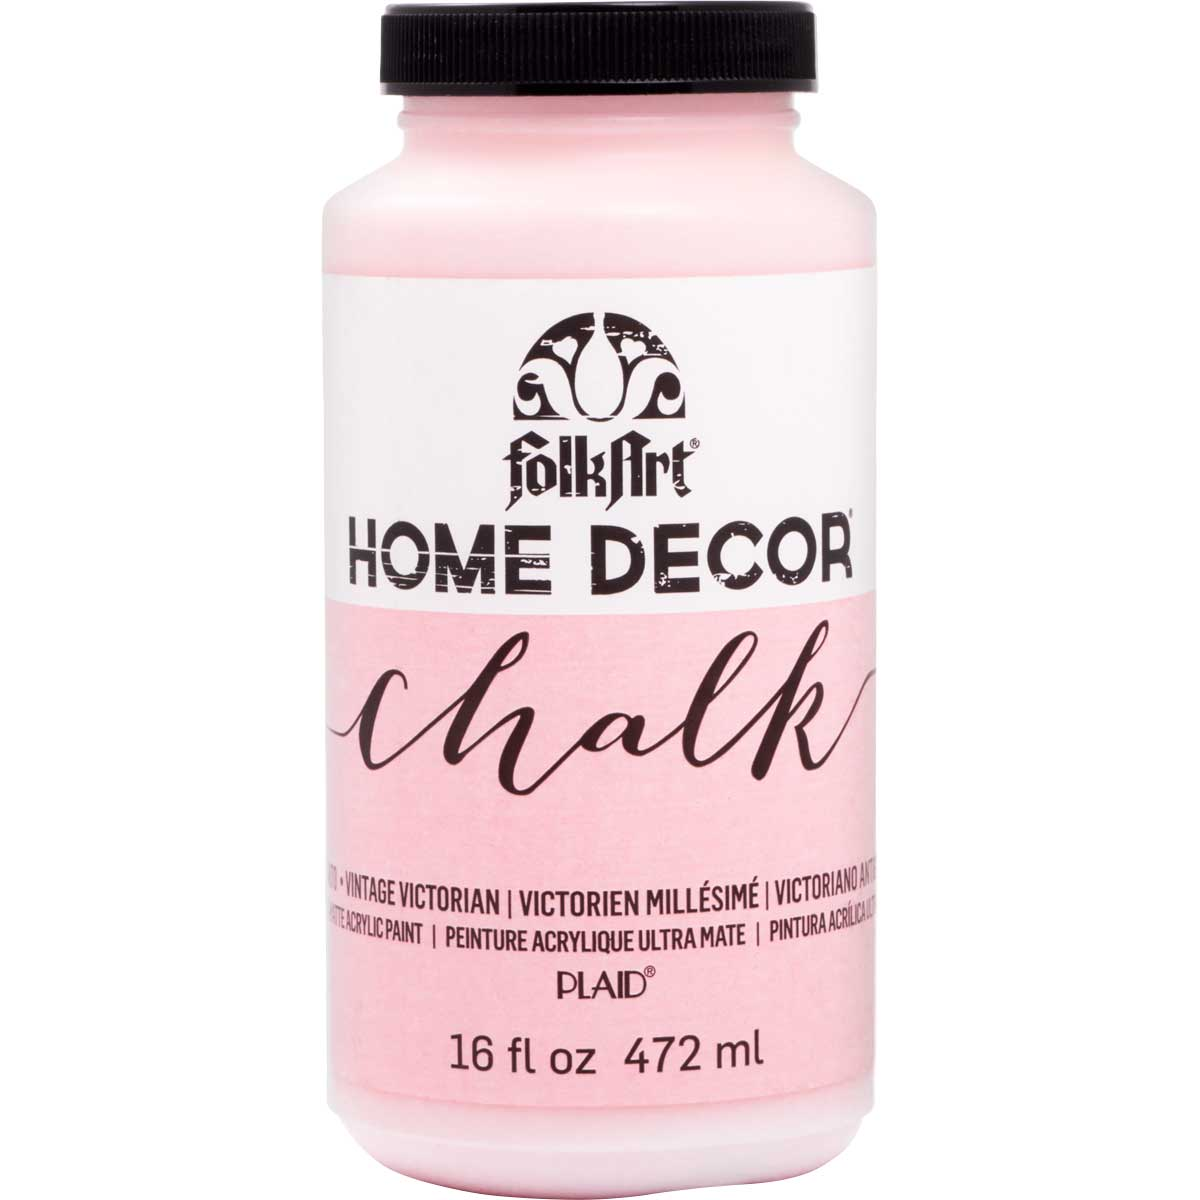 FolkArt ® Home Decor™ Chalk - Vintage Victorian, 16 oz.